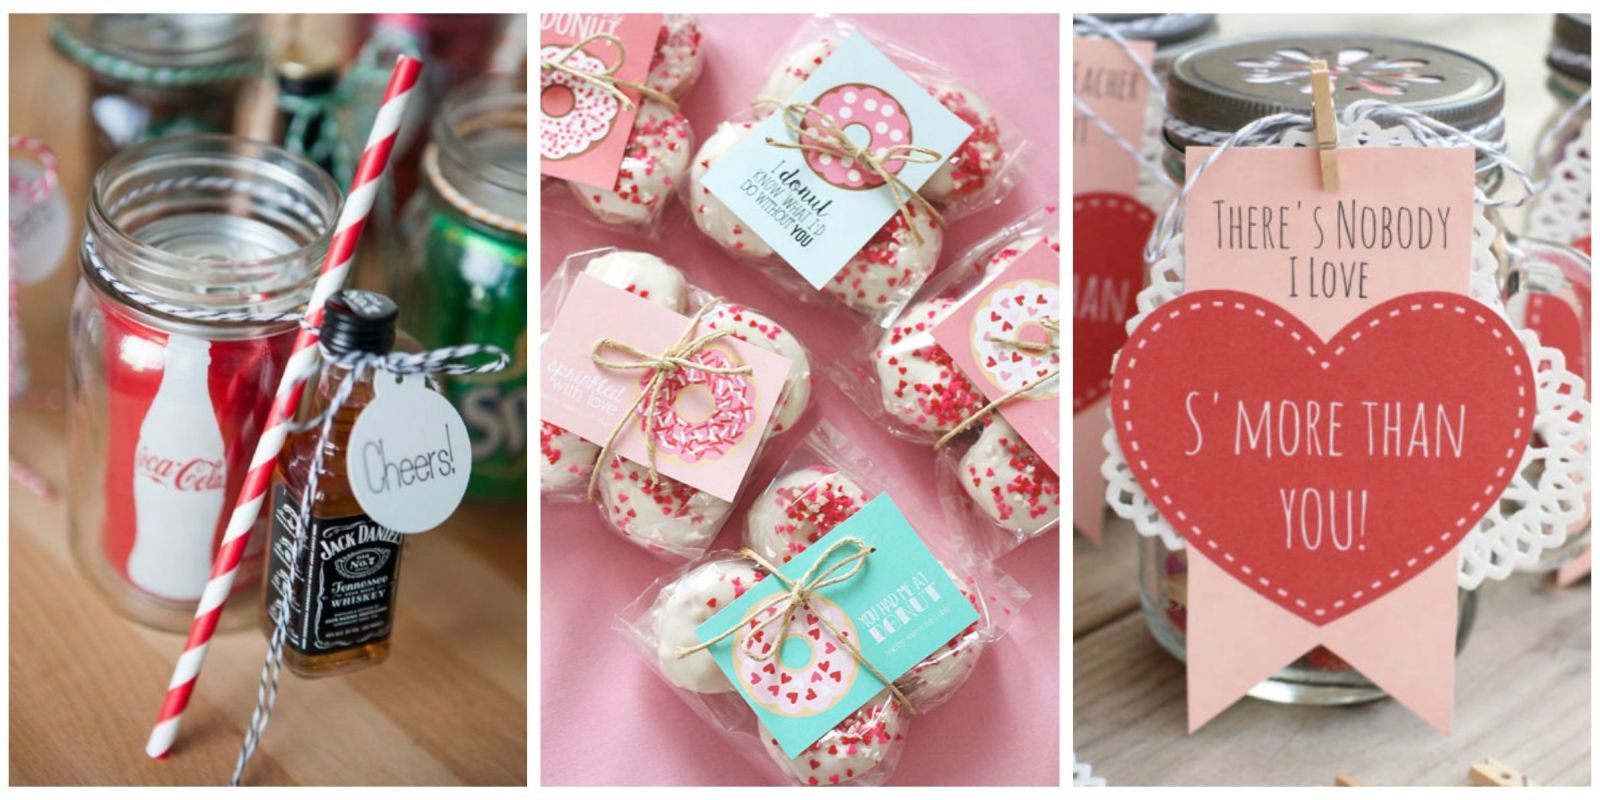 Best ideas about DIY Valentine Gift For Friends . Save or Pin 11 DIY Valentine s Day Gifts for Friends Galentine s Day Now.